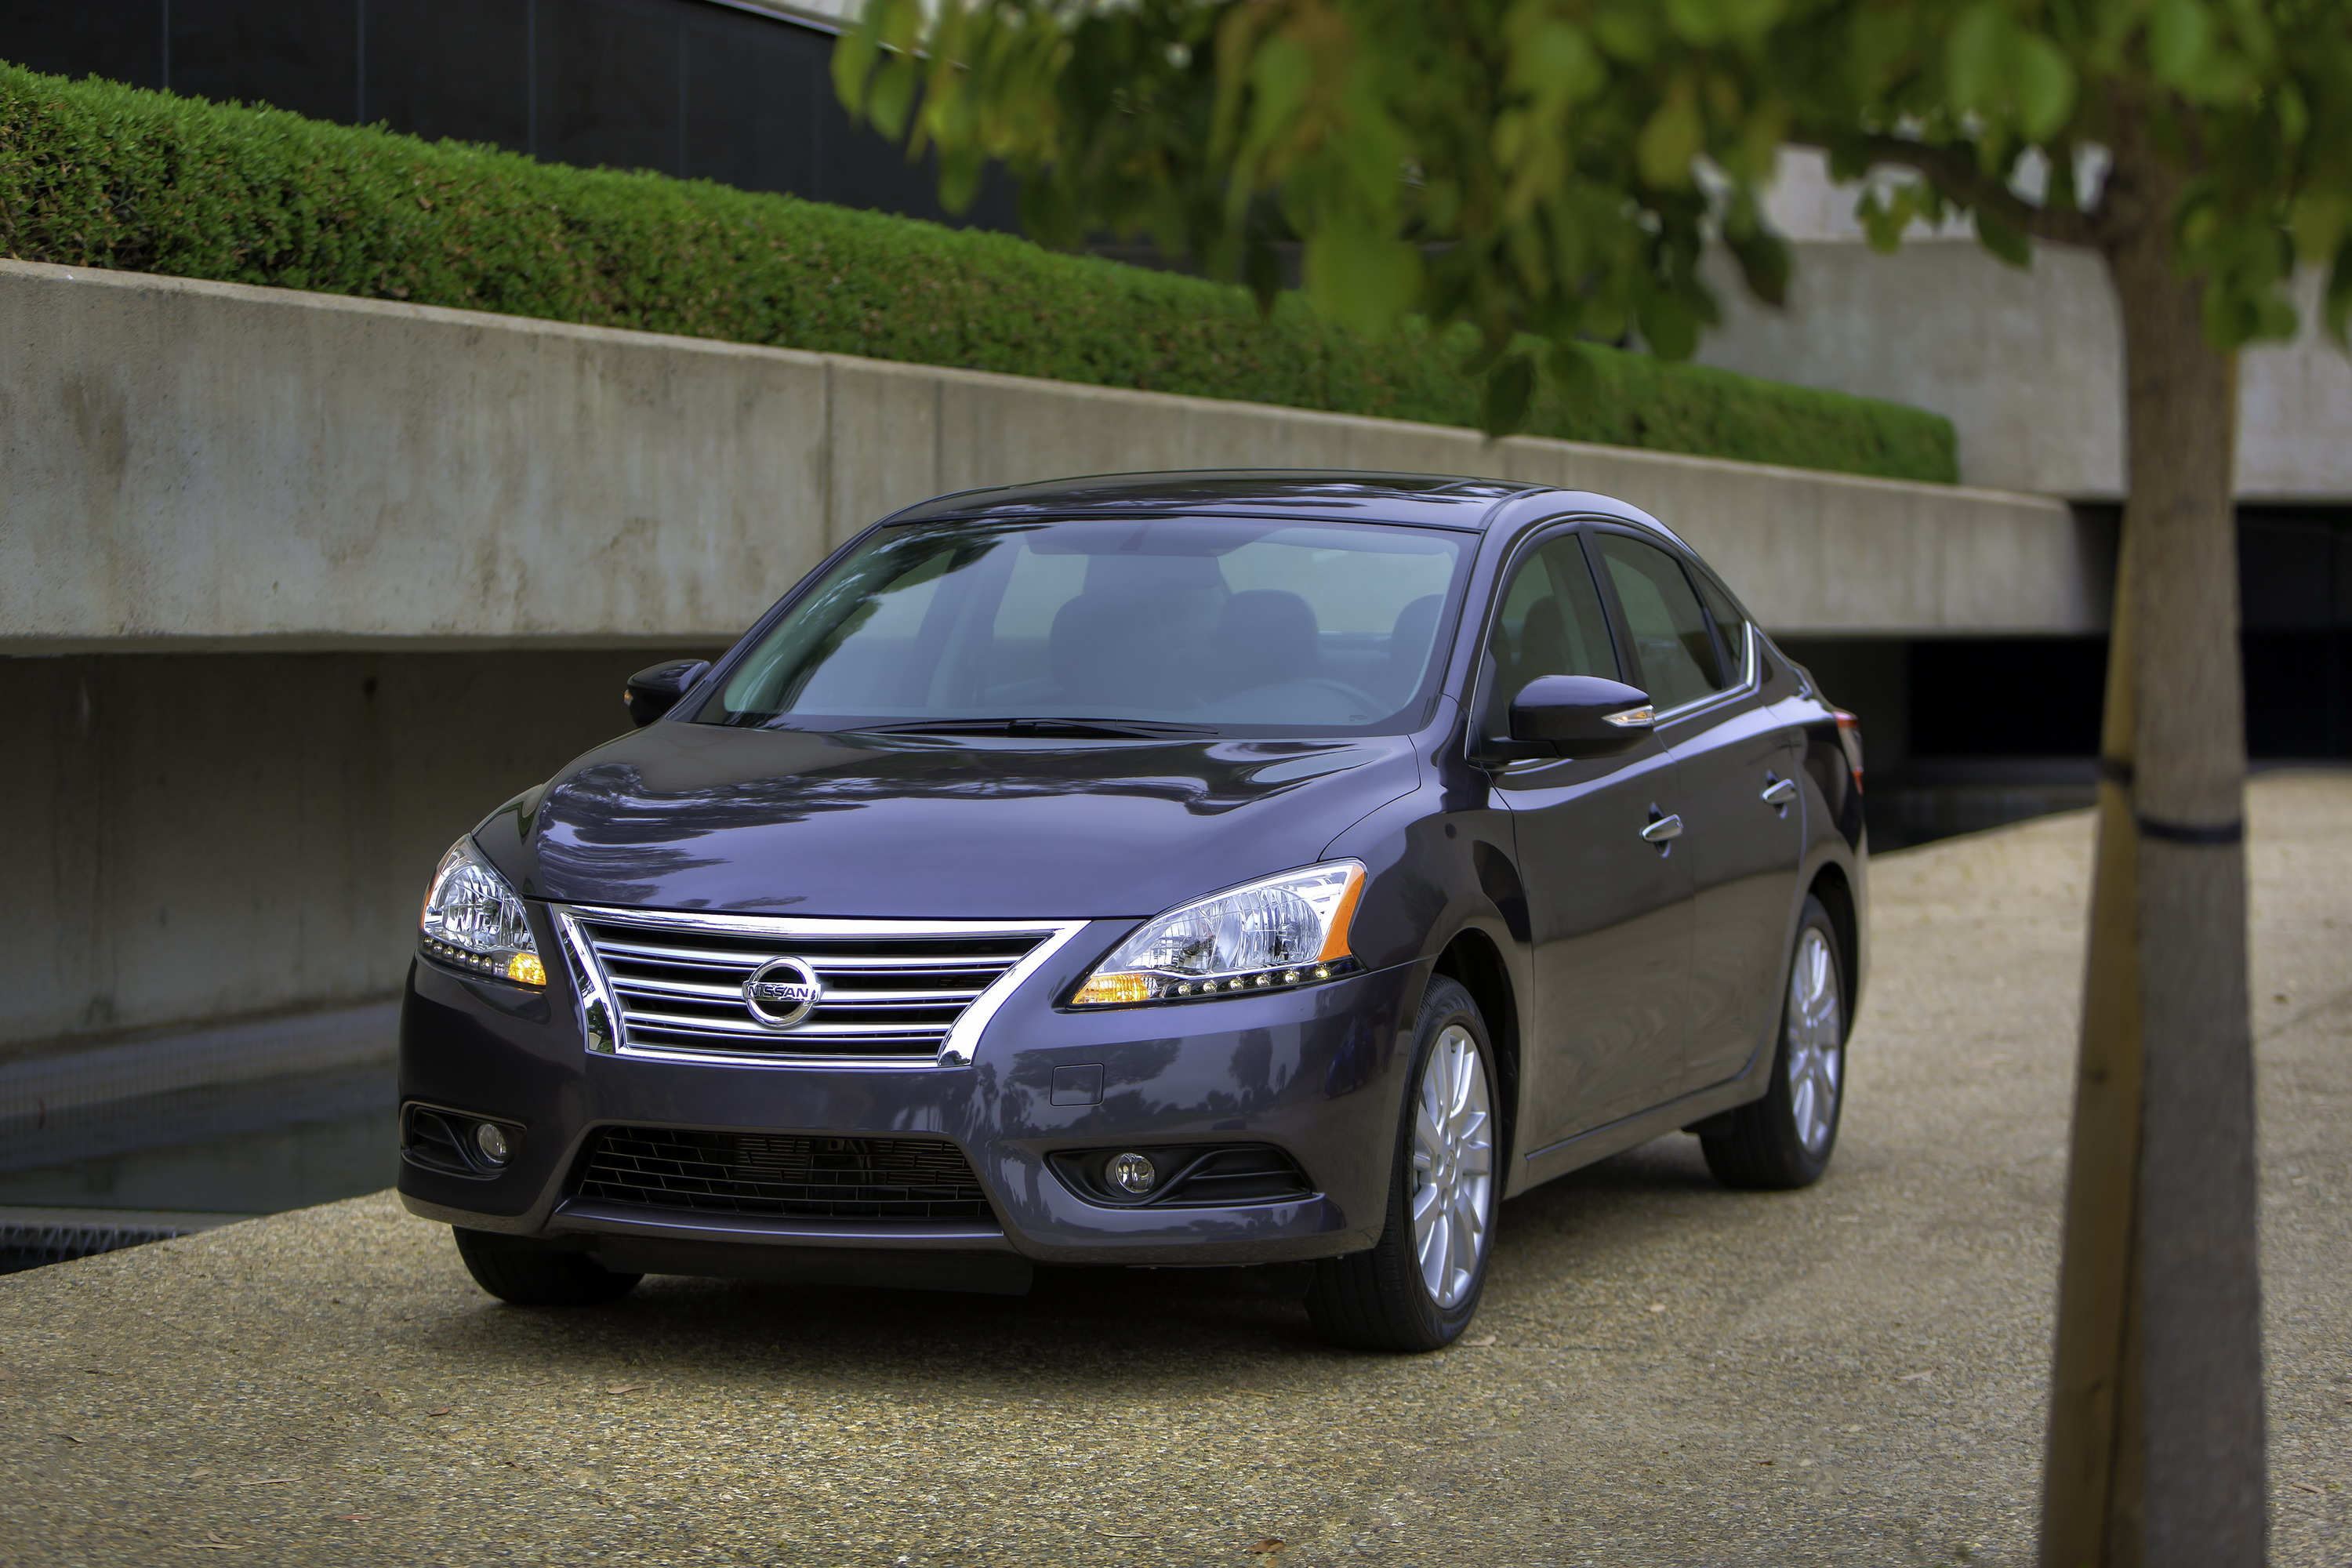 specs nissan sentra car mpg release price reviews and date prices